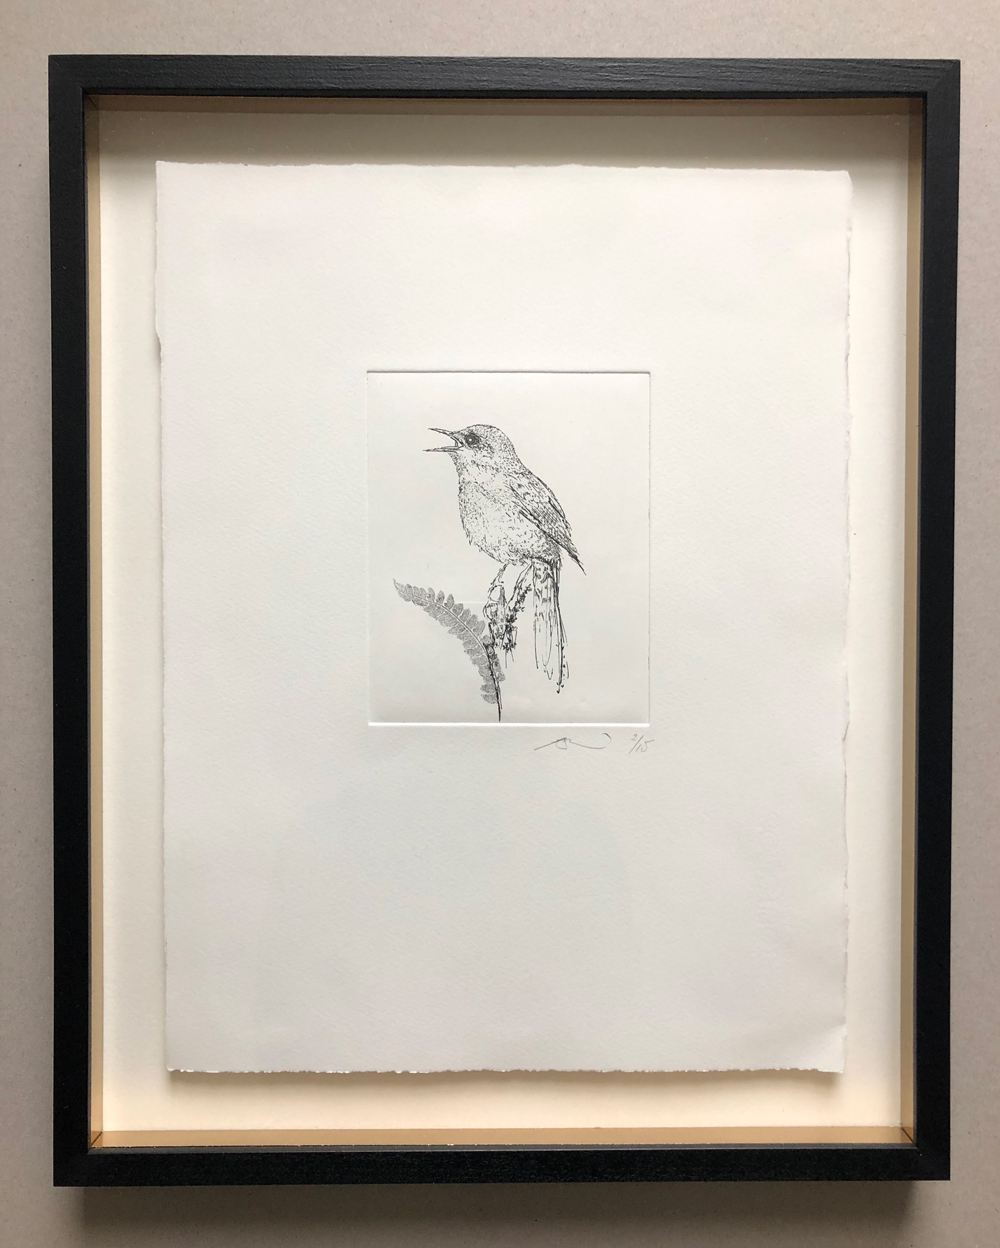 Wren---Handmade-Etching-in-Black-frame-with-gold-fillets-46cm-x-37cm---framed-.jpg